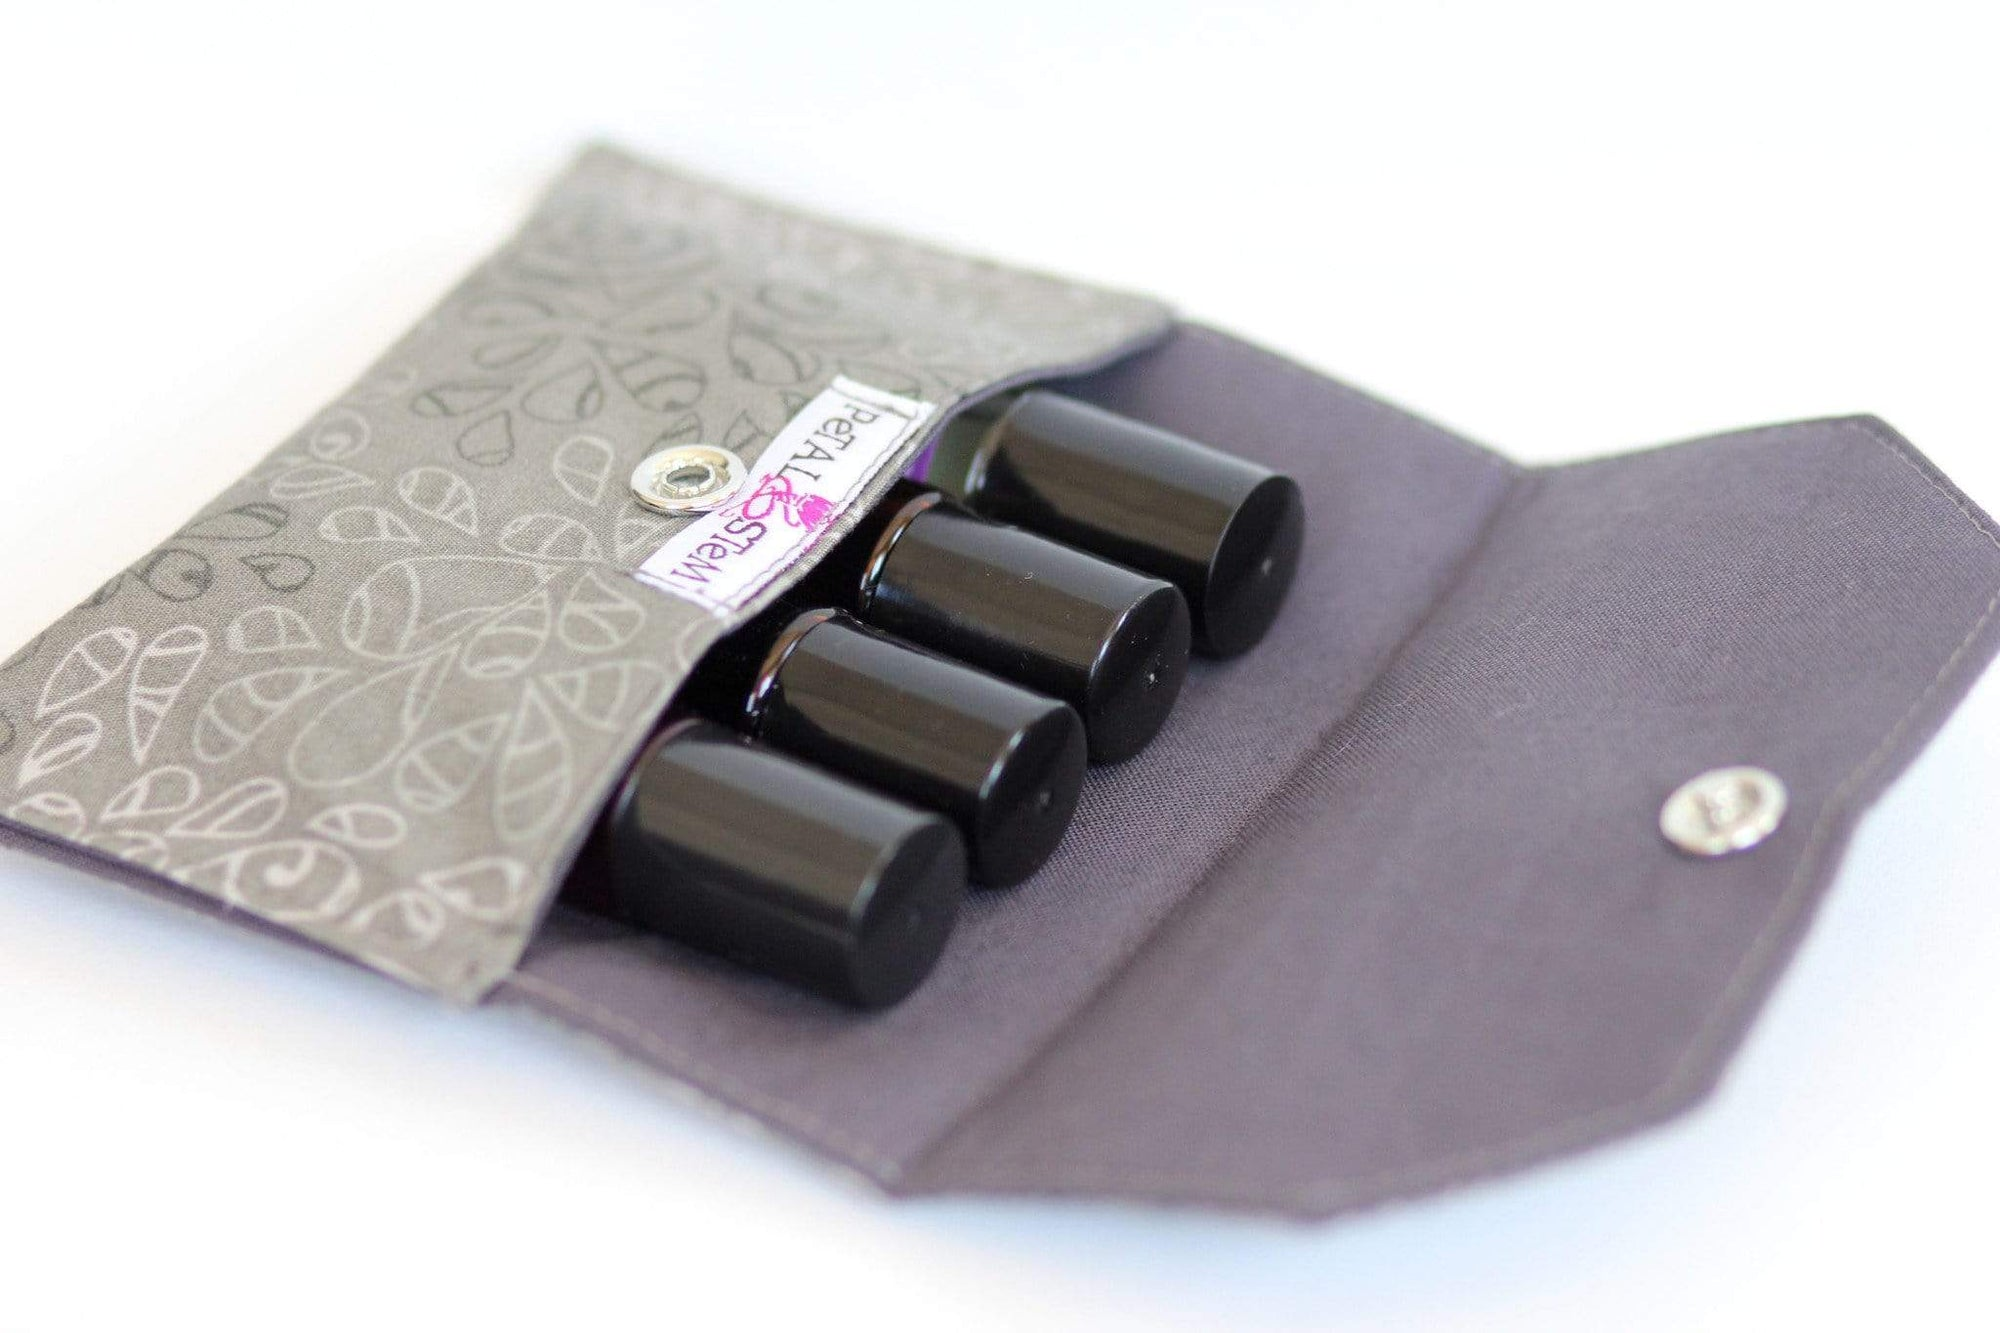 Essential Oil Bag (small) Natural Elements Grey Travel Pouch - Holds your most important oils - Petal and Stem